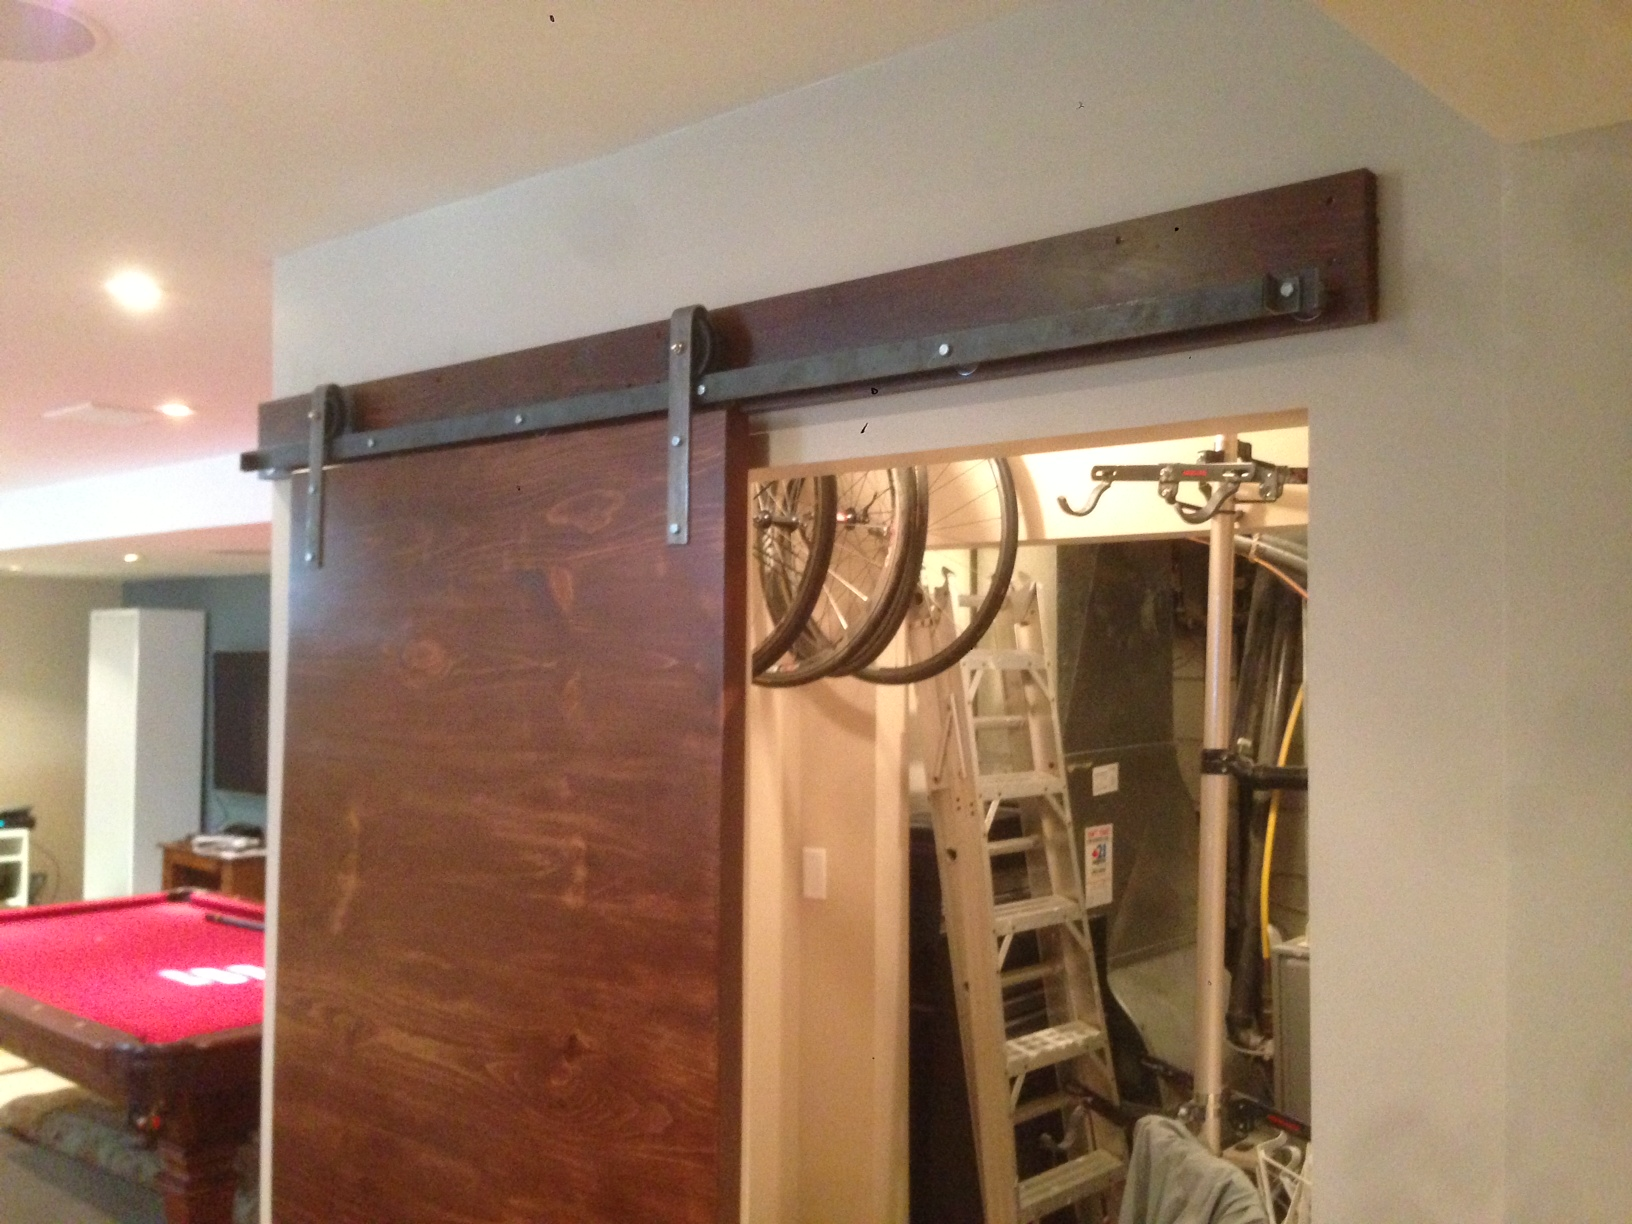 Looks like all the fun is store away in fashion!  Who wouldn't want the door to their storage room be a slab sliding barn door?